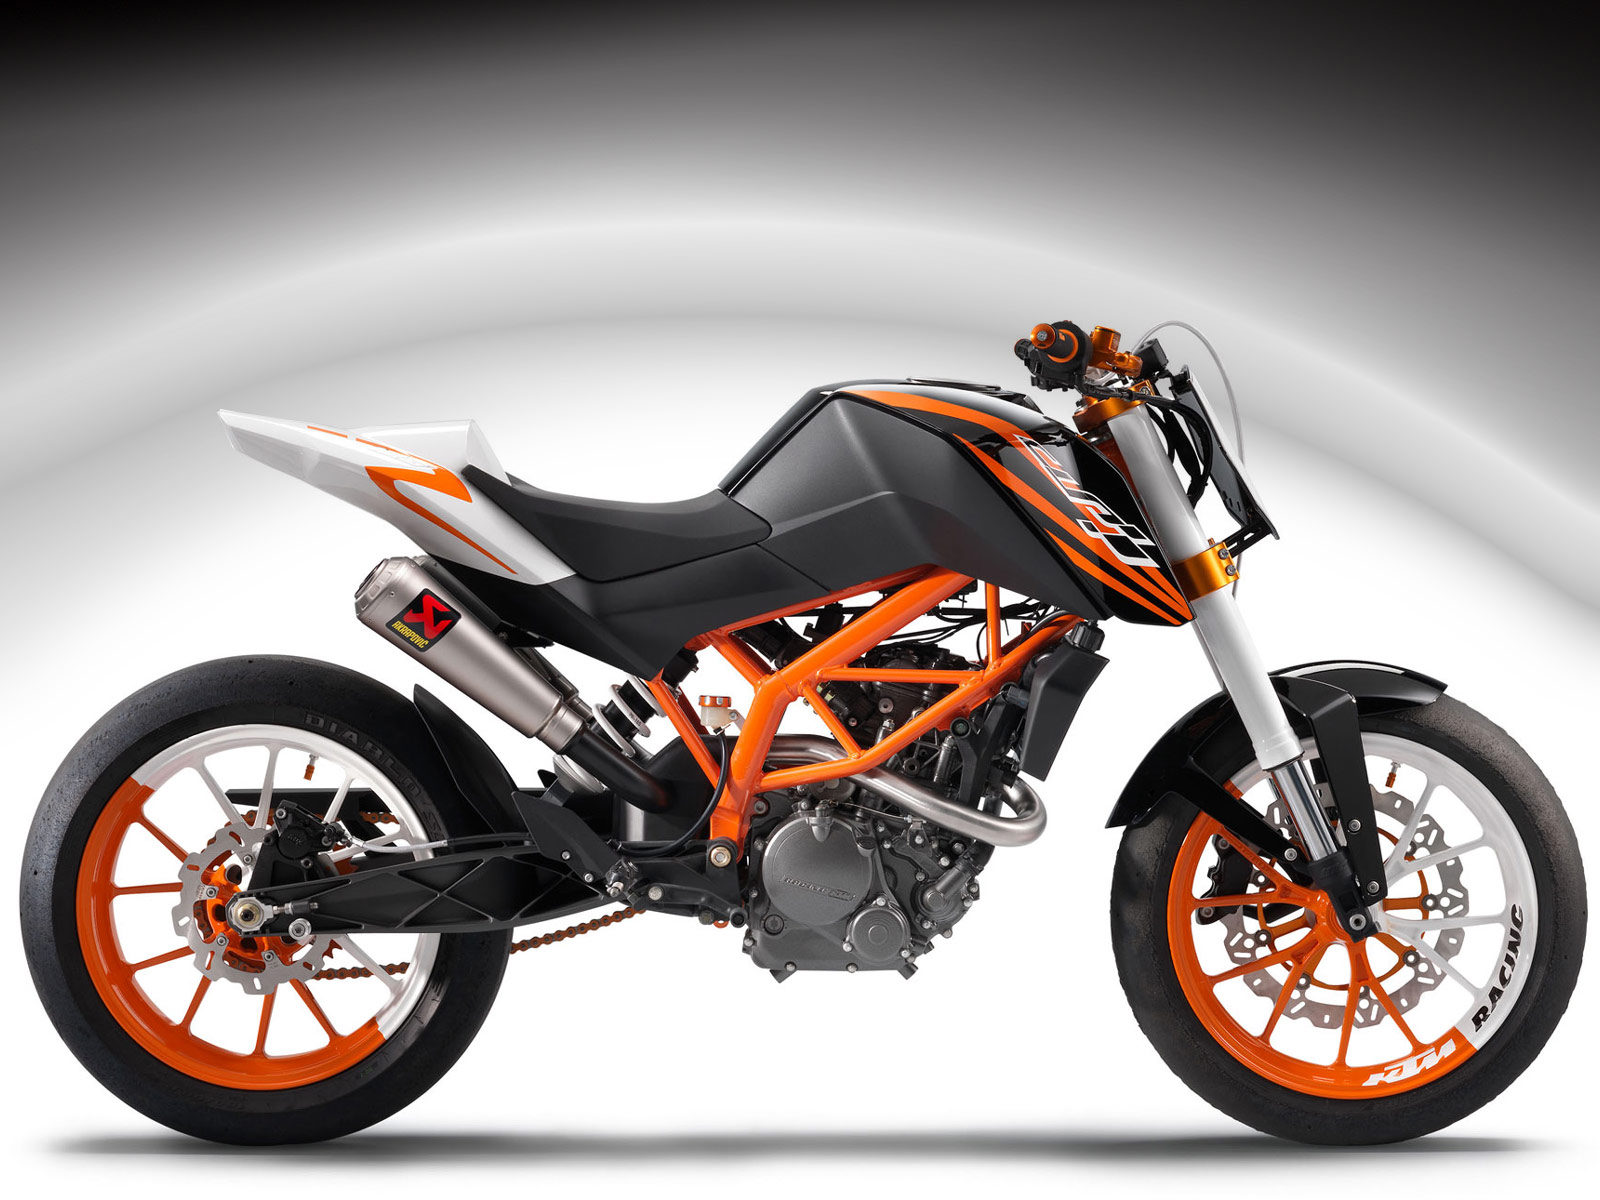 gambar motor ktm 125 race 2010. Black Bedroom Furniture Sets. Home Design Ideas